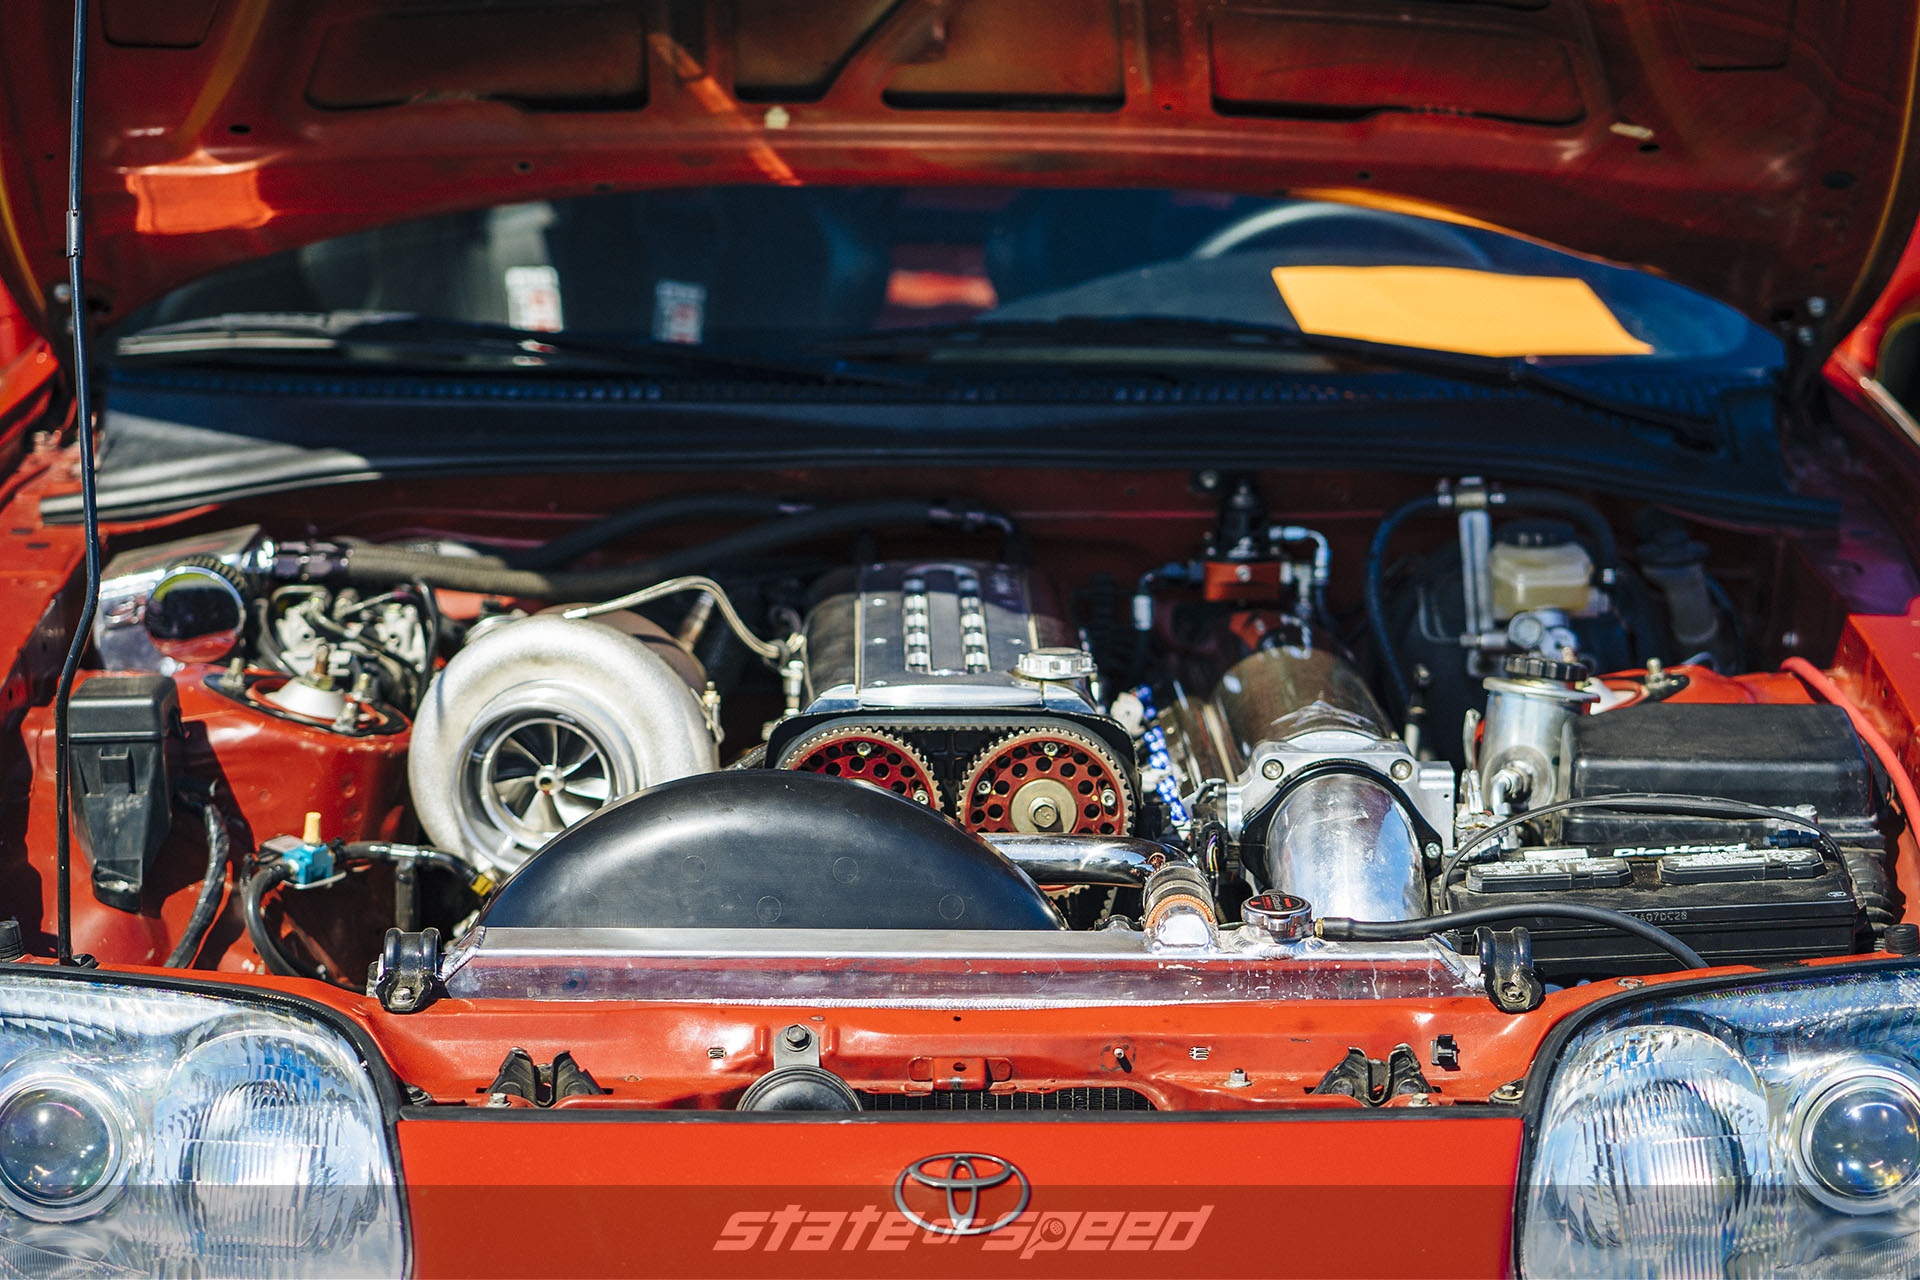 The Toyota Supra Then And Now State Of Speed Performance